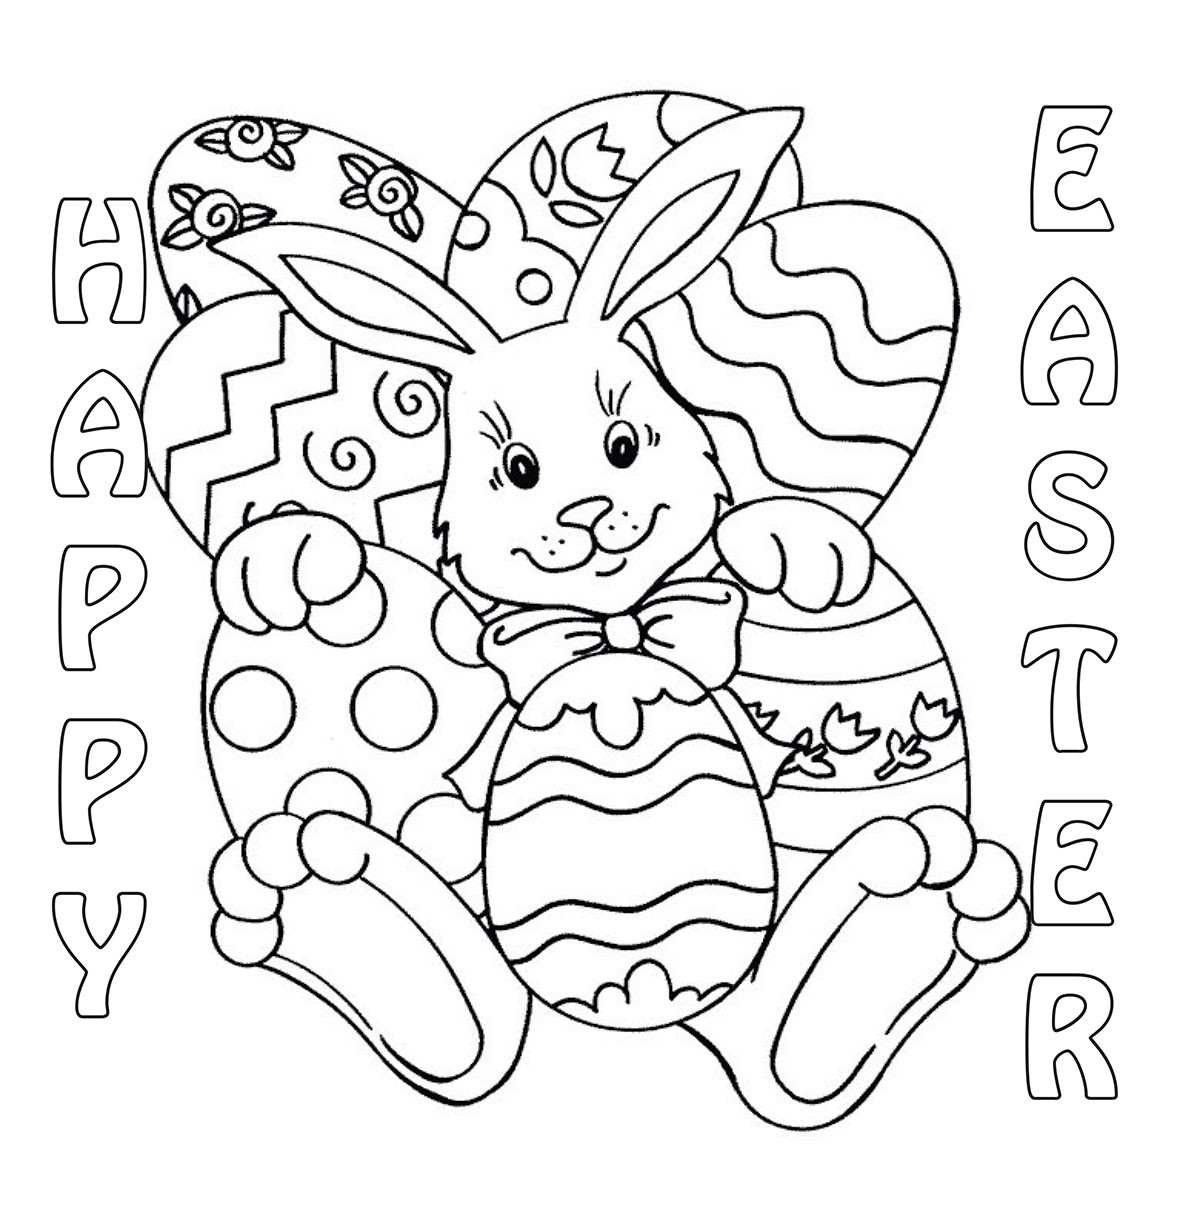 Best ideas about Coloring Pages For Kids For Easter . Save or Pin March 2014 Now.